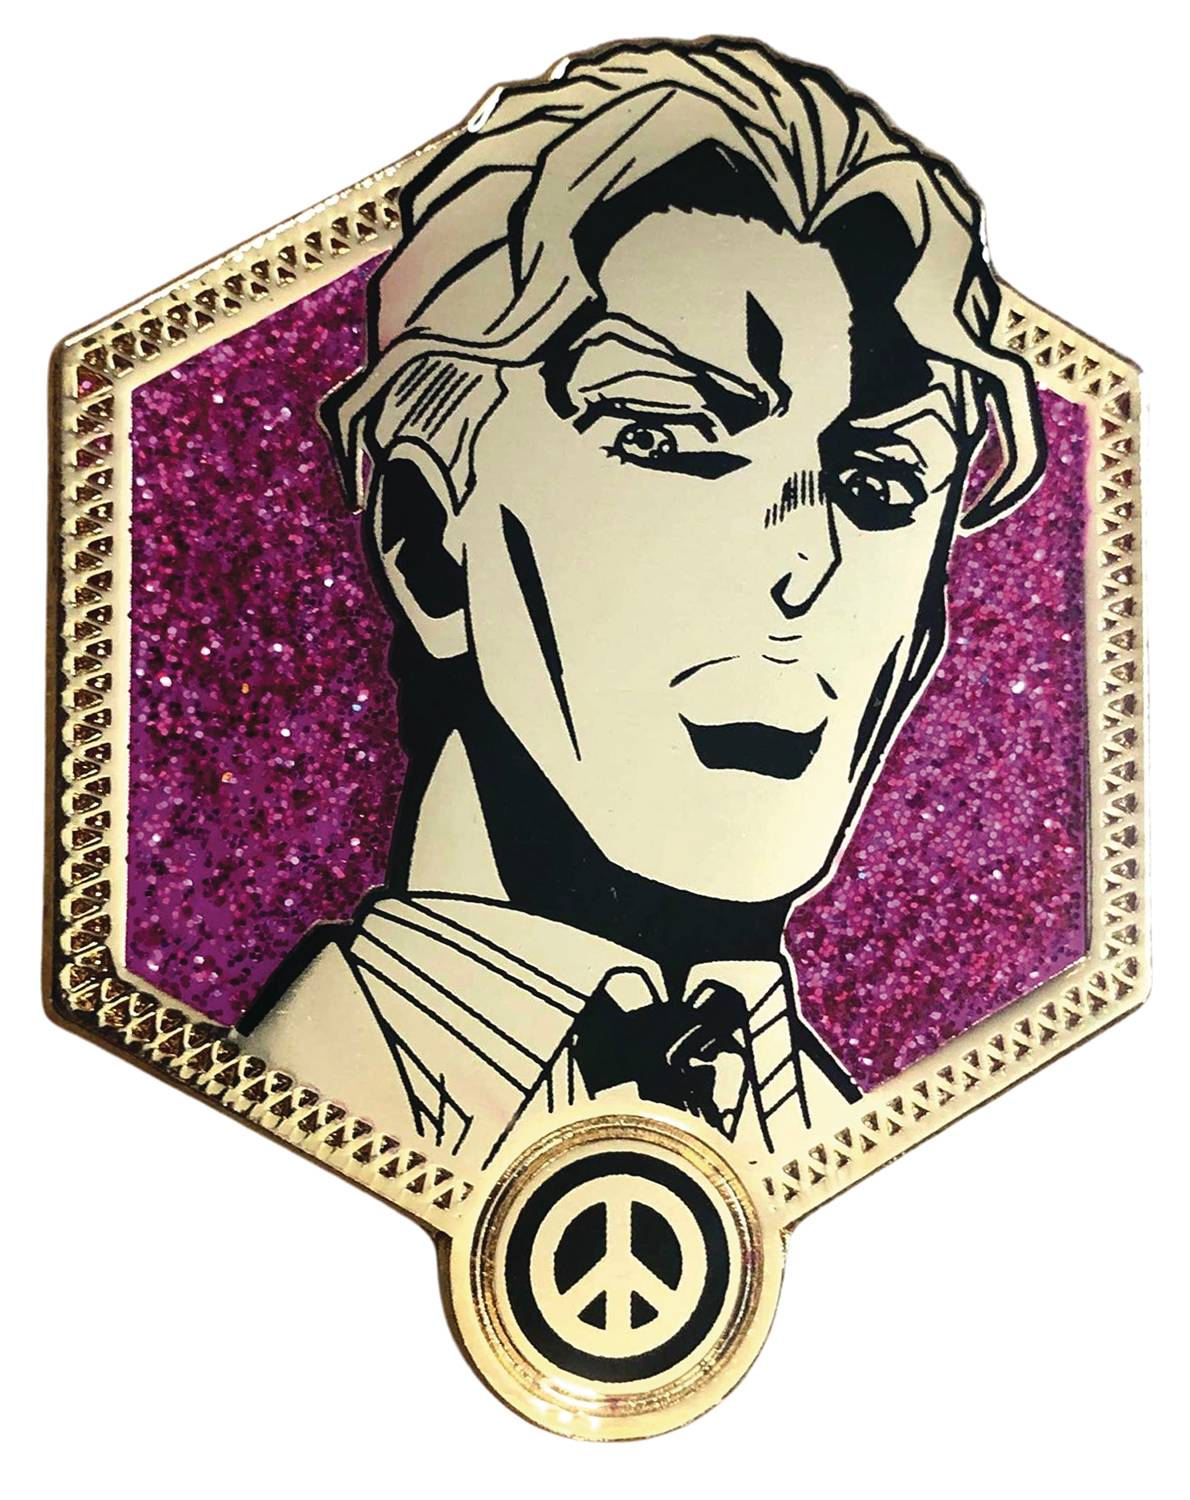 JOJOS BIZARRE ADVENTURE GOLDEN YOSHIKAGE KIRA PIN